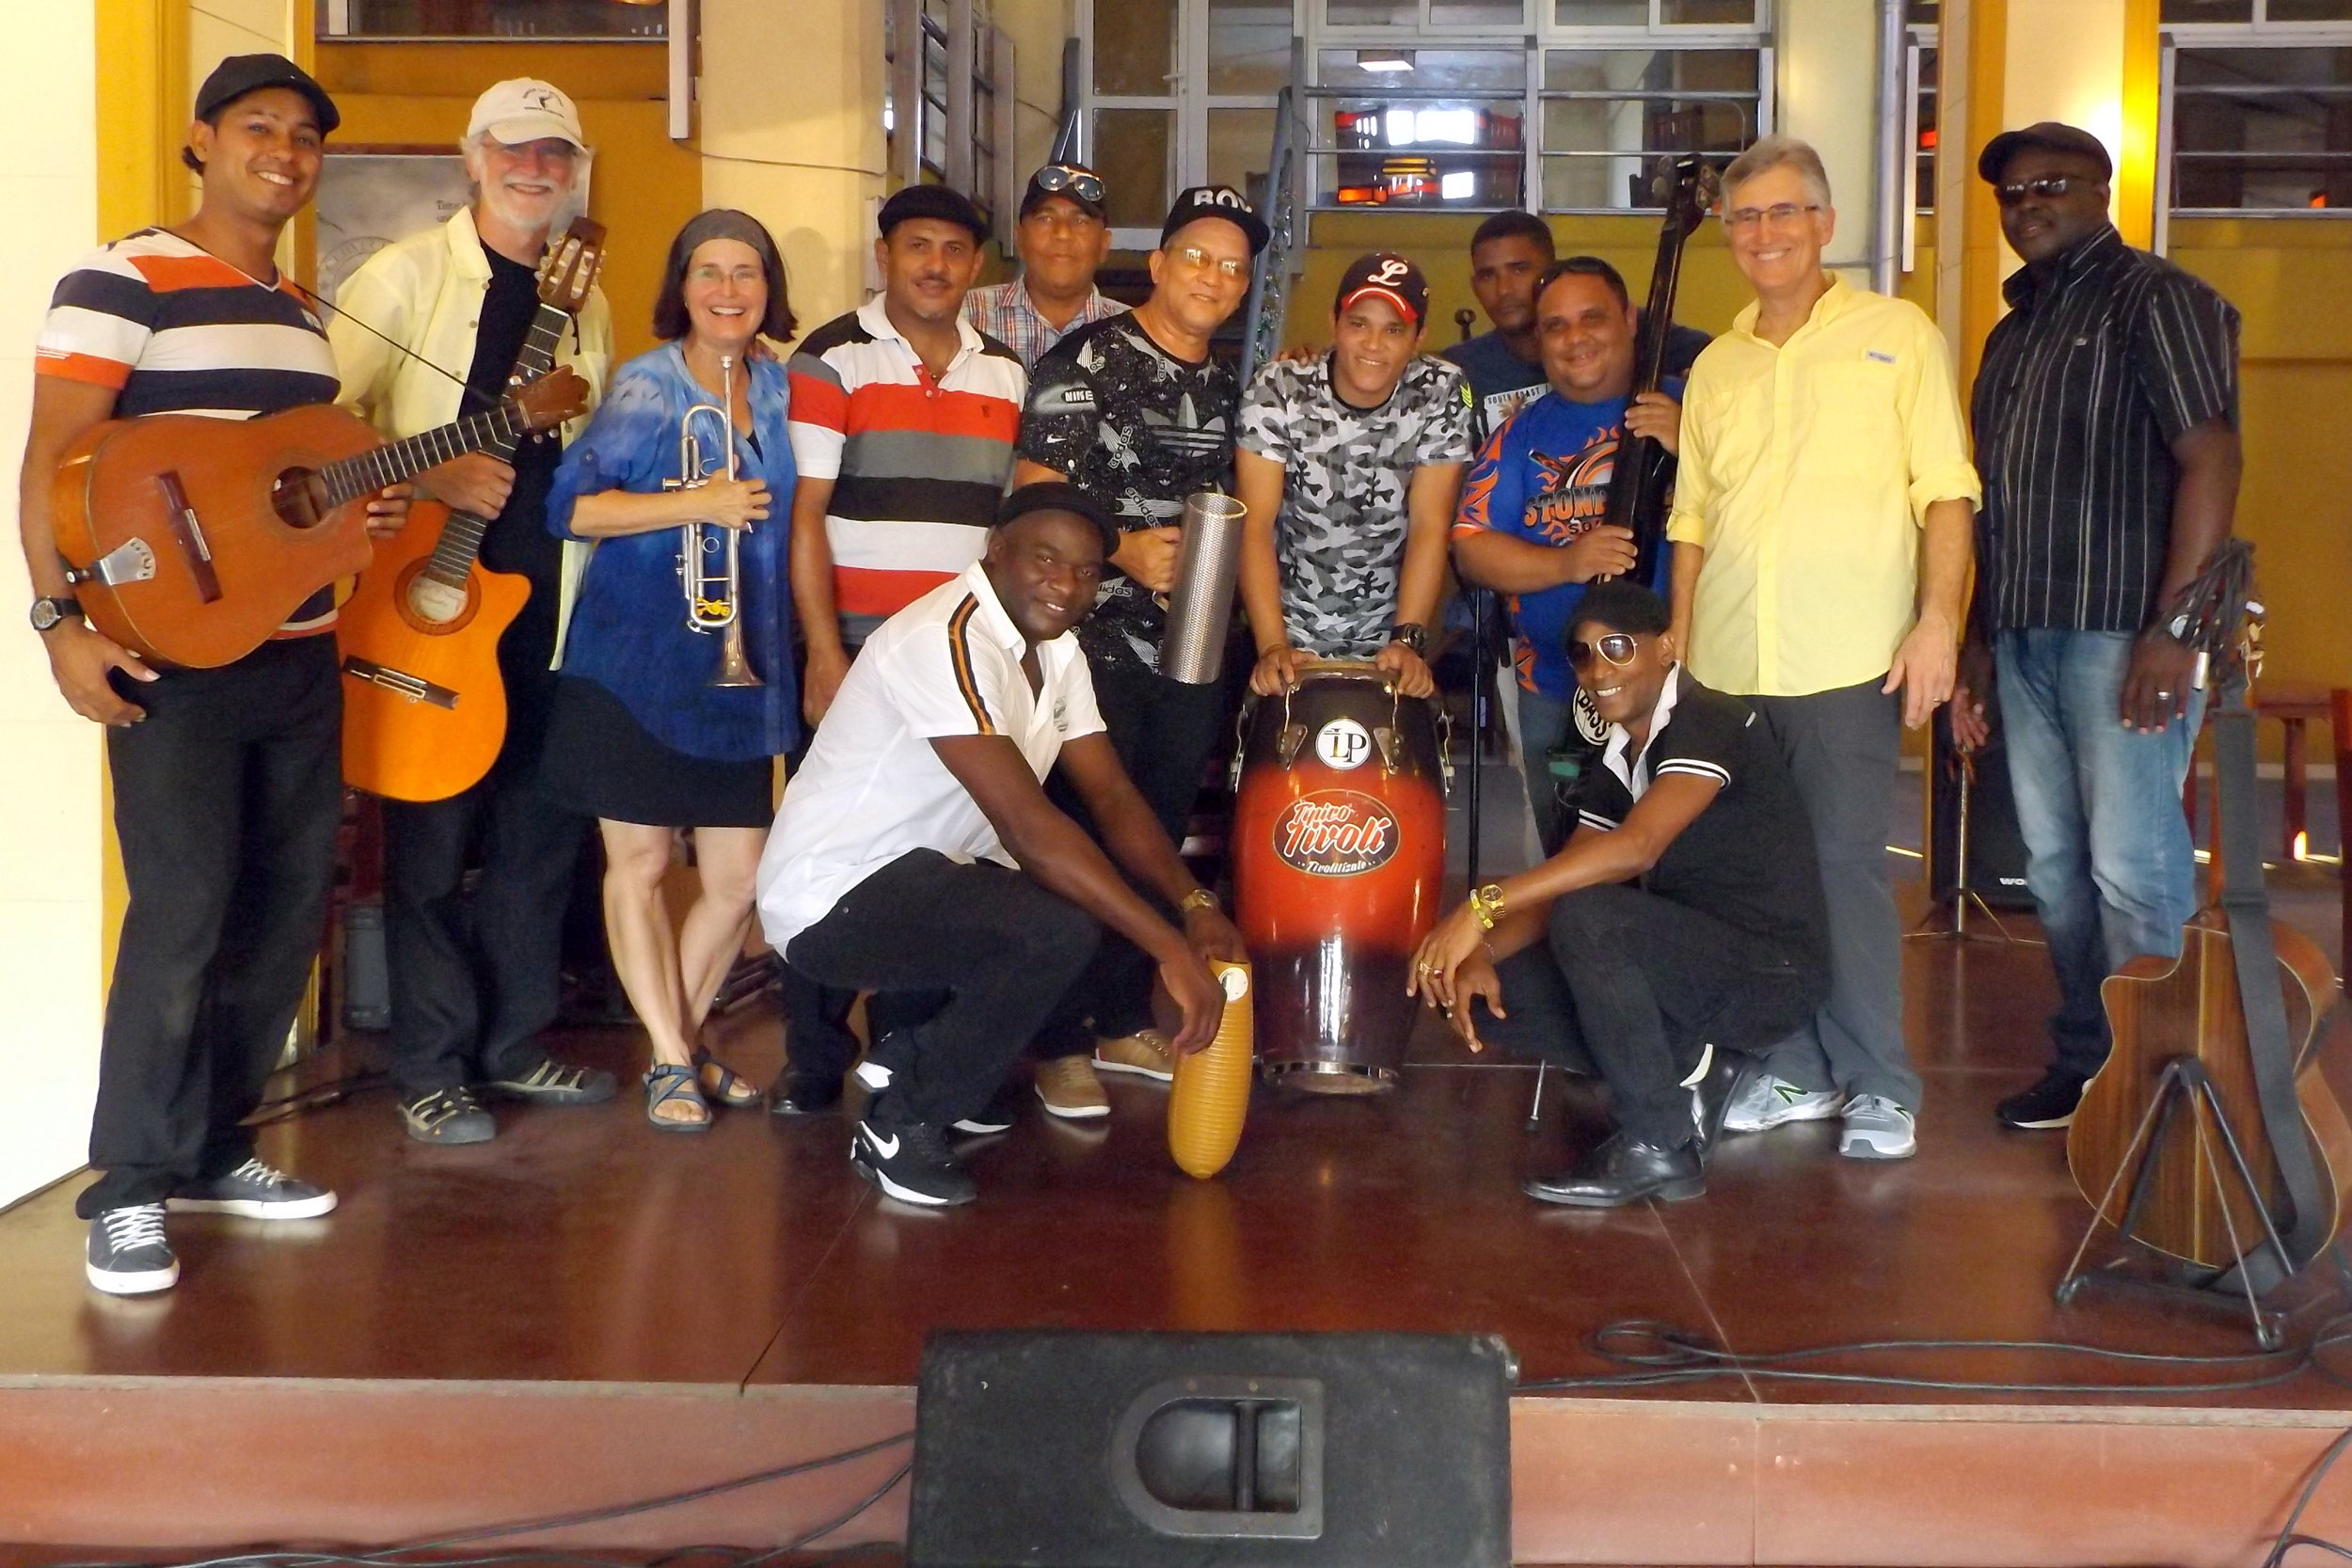 Performance in Santiago de Cuba at Cerveceria Puerto del Rey with Septeto Tipico Tivoli band, March 2018!